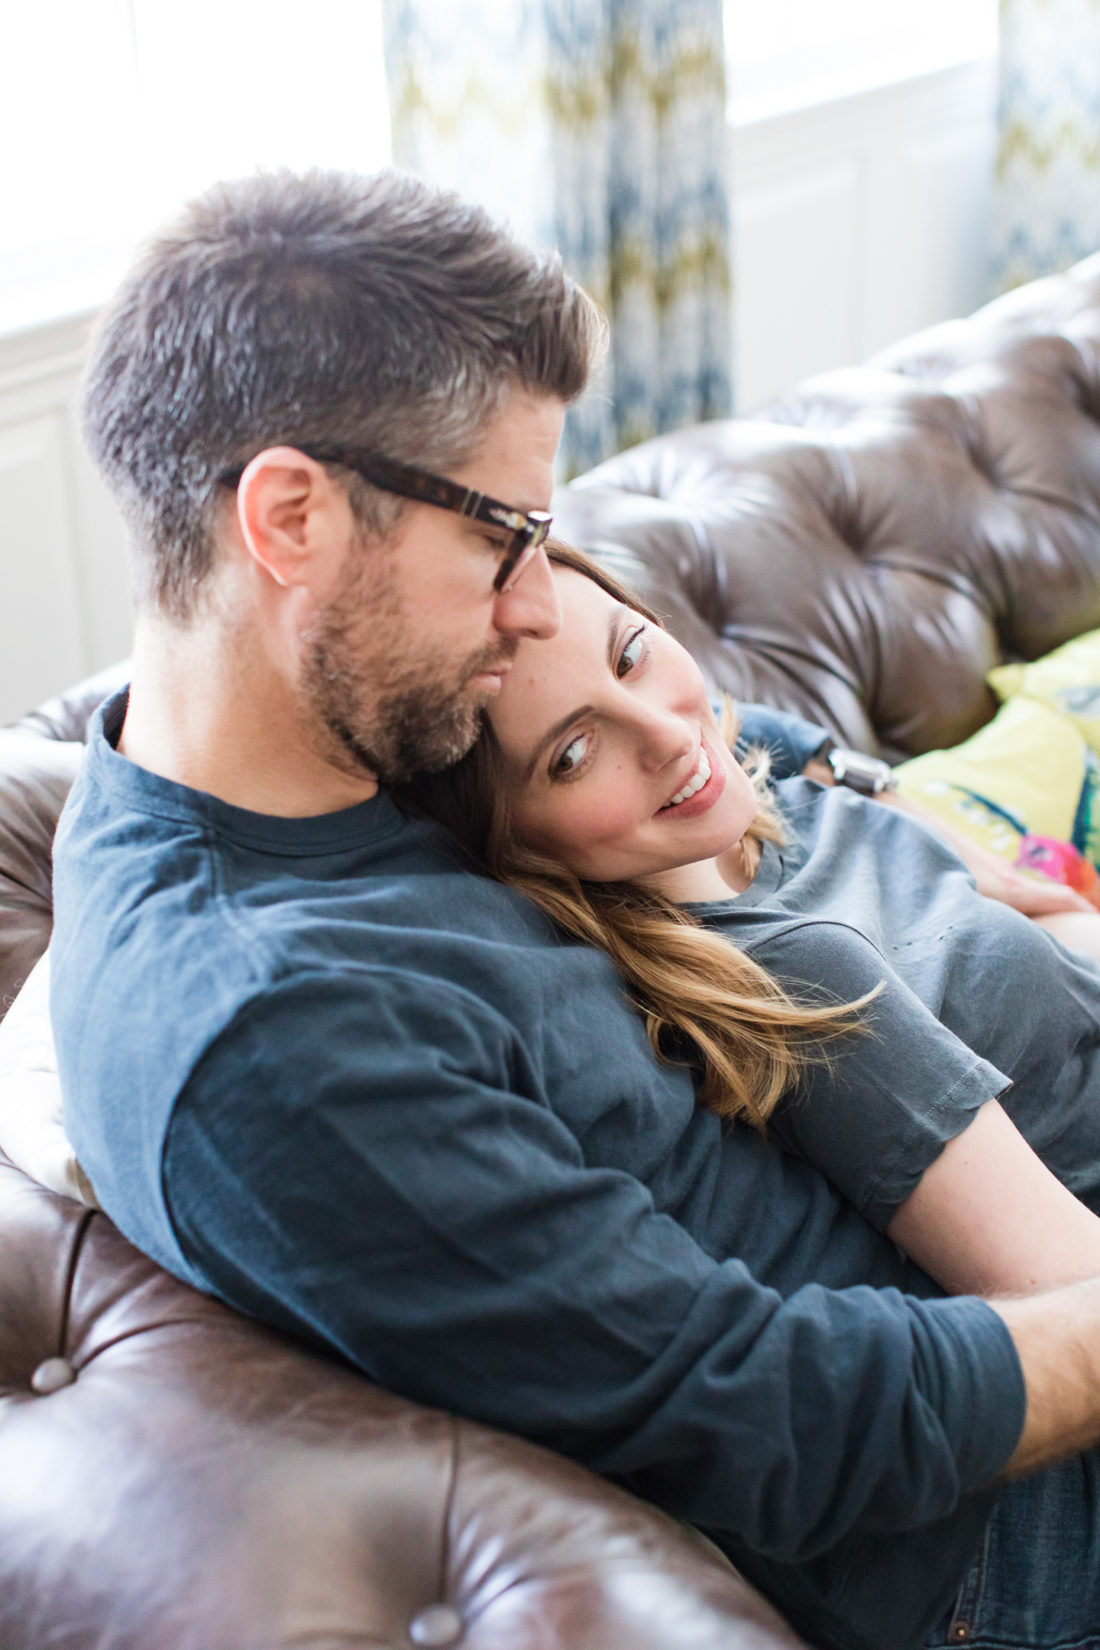 Eva Amurri Martino and Kyle Martino embrace on the couch in their living room in Connecticut